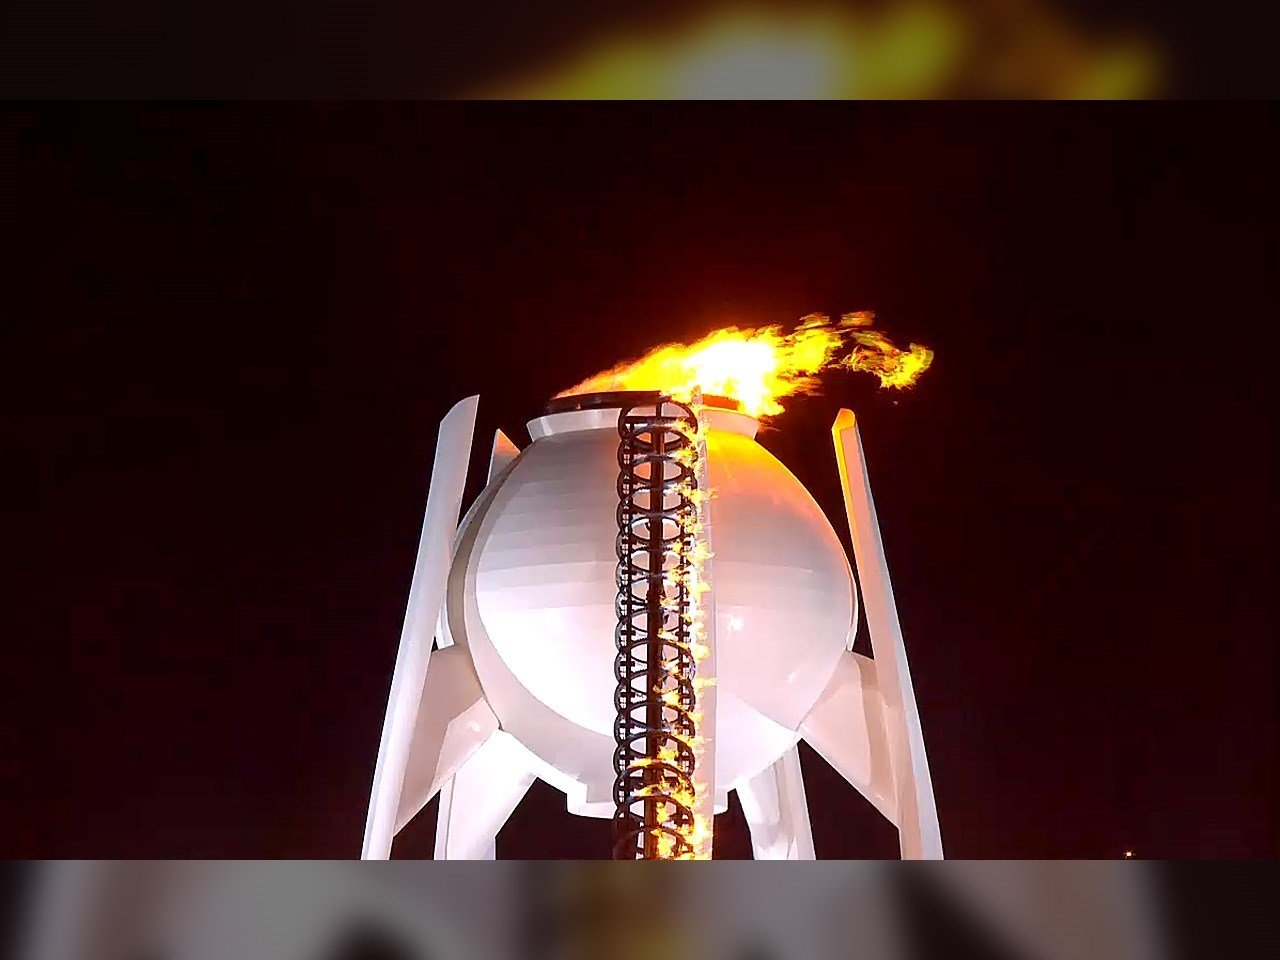 The Olympic Cauldron lit inside of Pyeongchang Olympic Stadium for the 2018 Winter Olympics games during the opening ceremony.